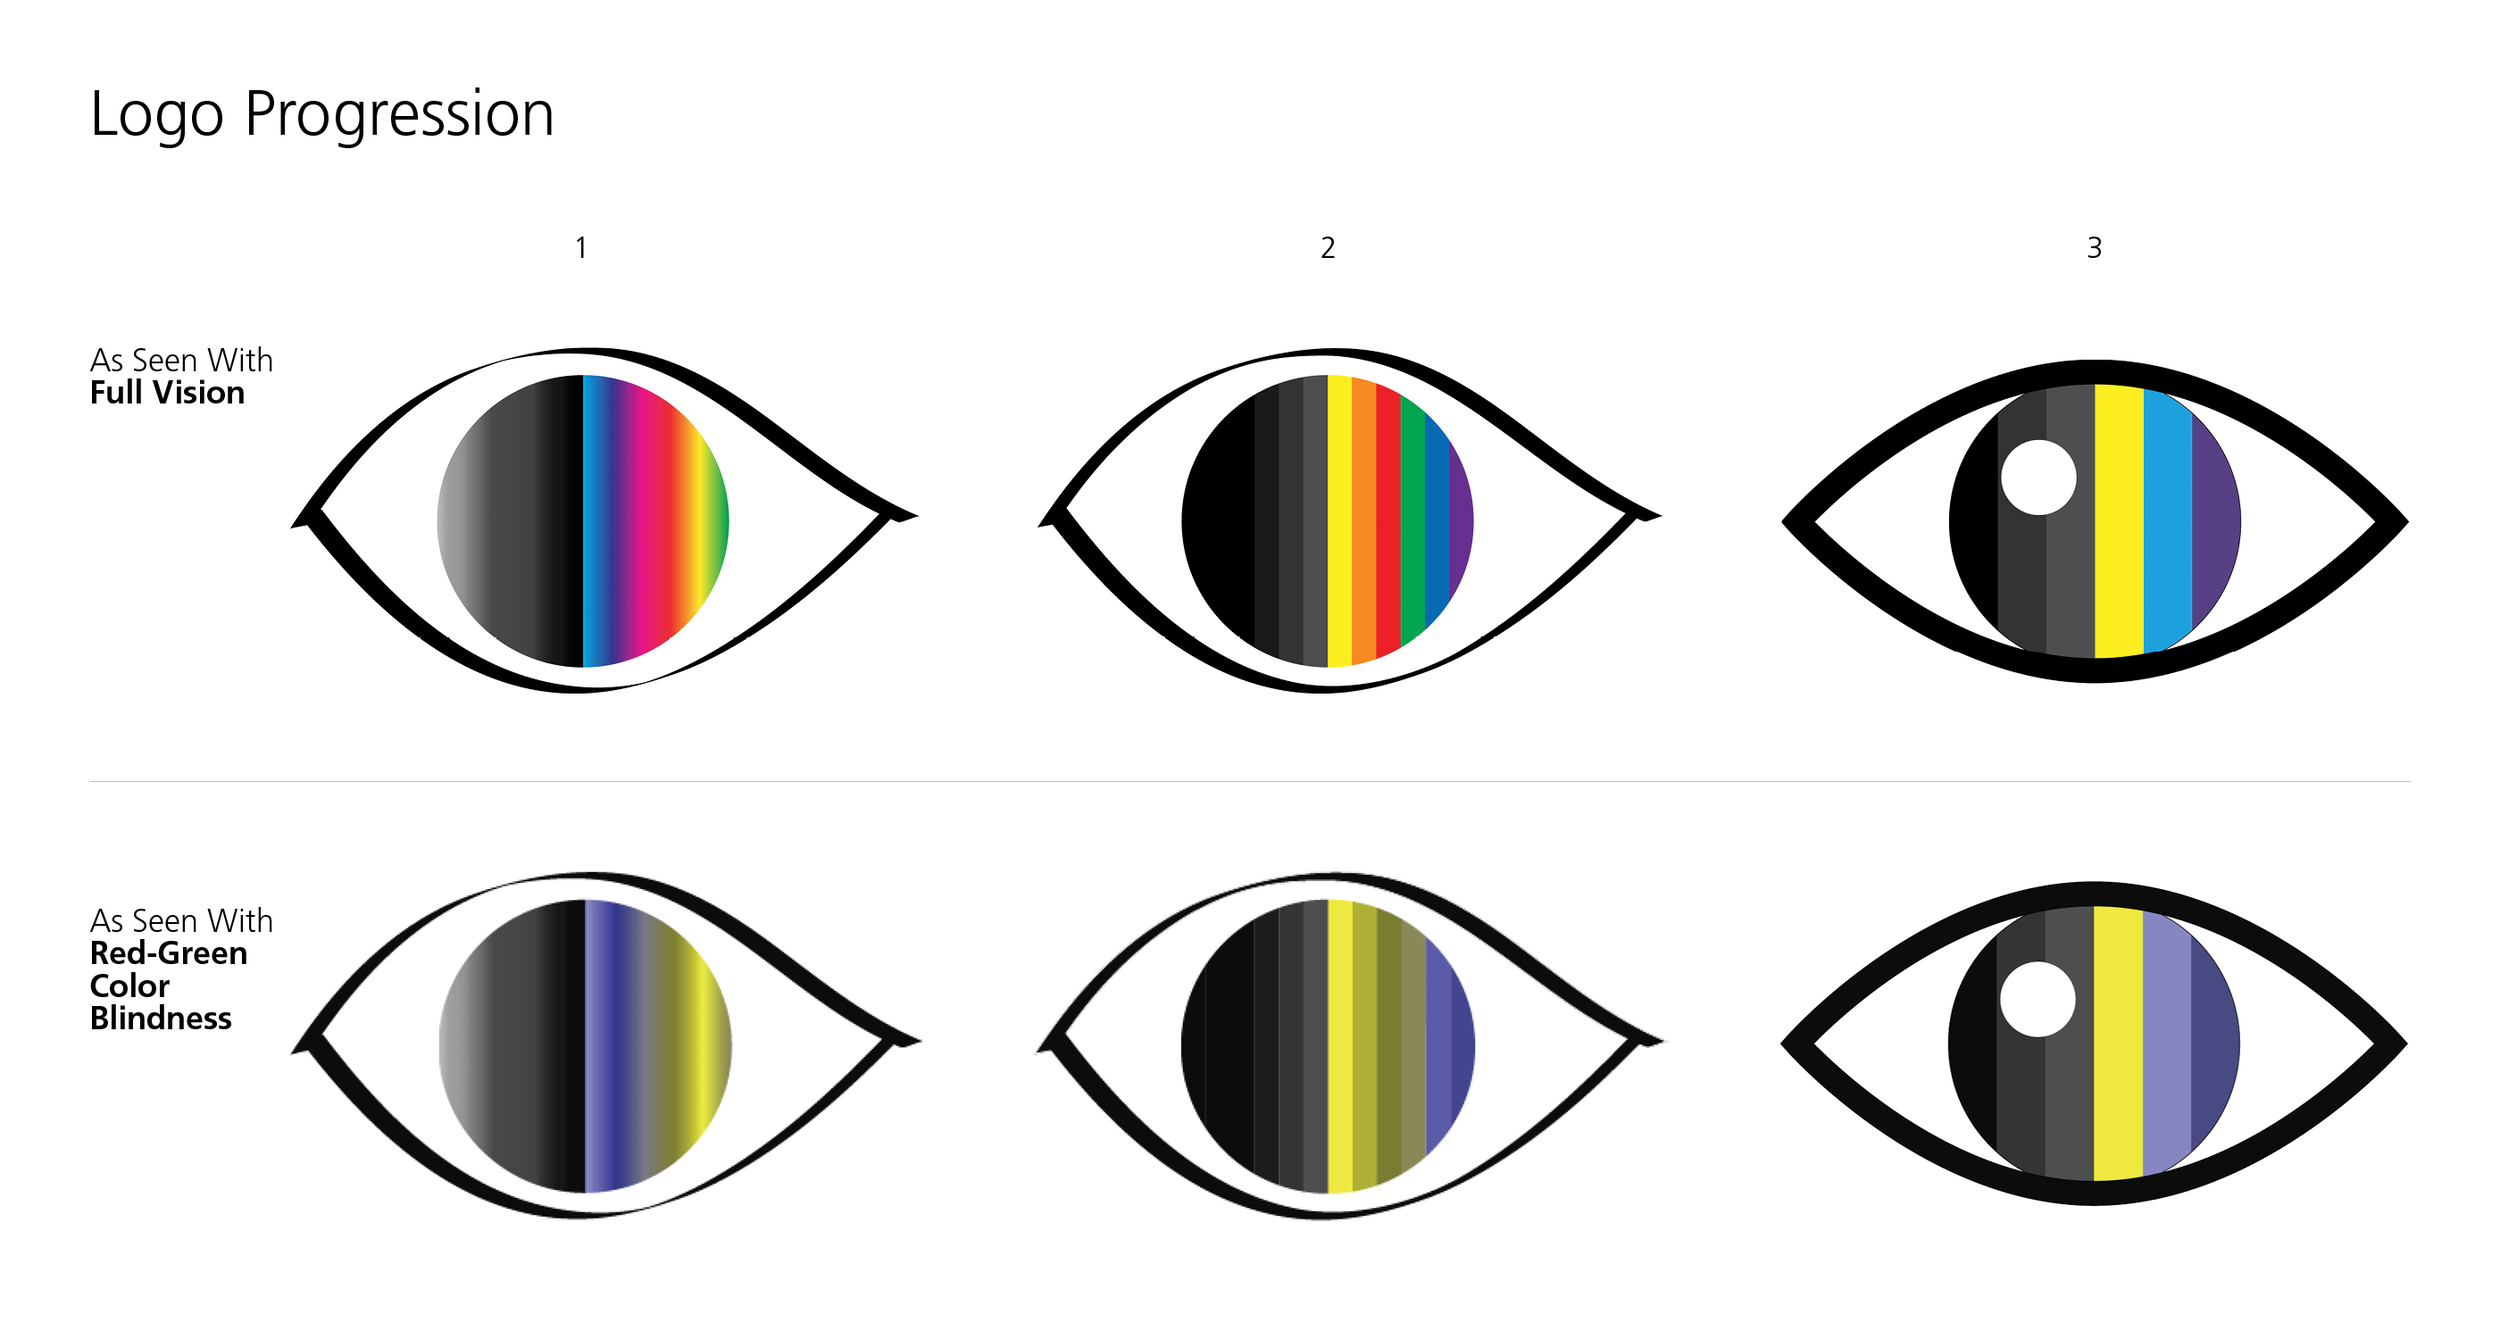 The later, simplified logo, at the right, works well for both people with color vision impairment and those with full vision. The bottom row uses  Color Oracle  software to show how the icons would appear to people with red-green color blindness.